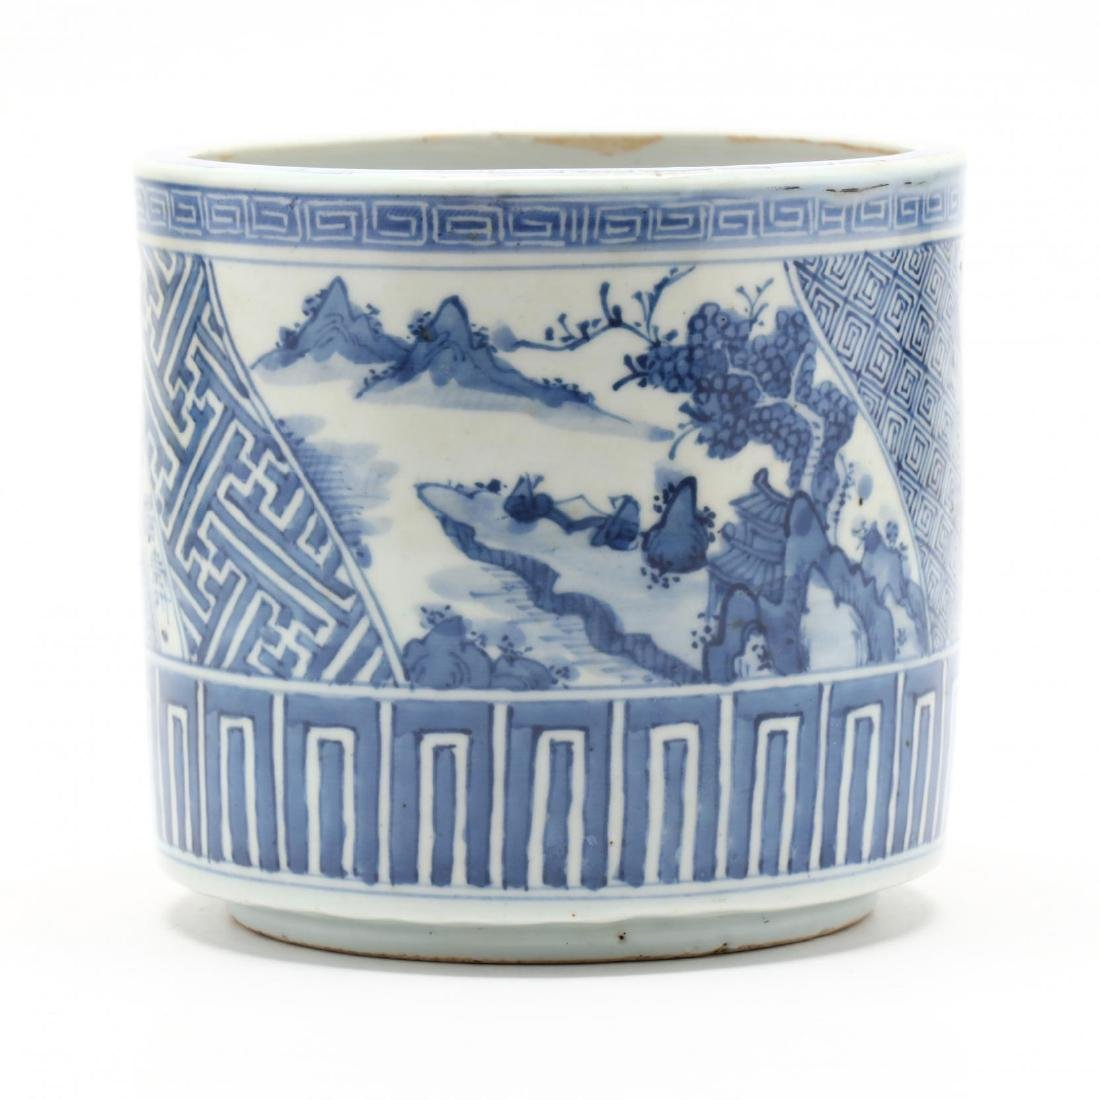 A Japanese Blue and White Porcelain Brush Pot